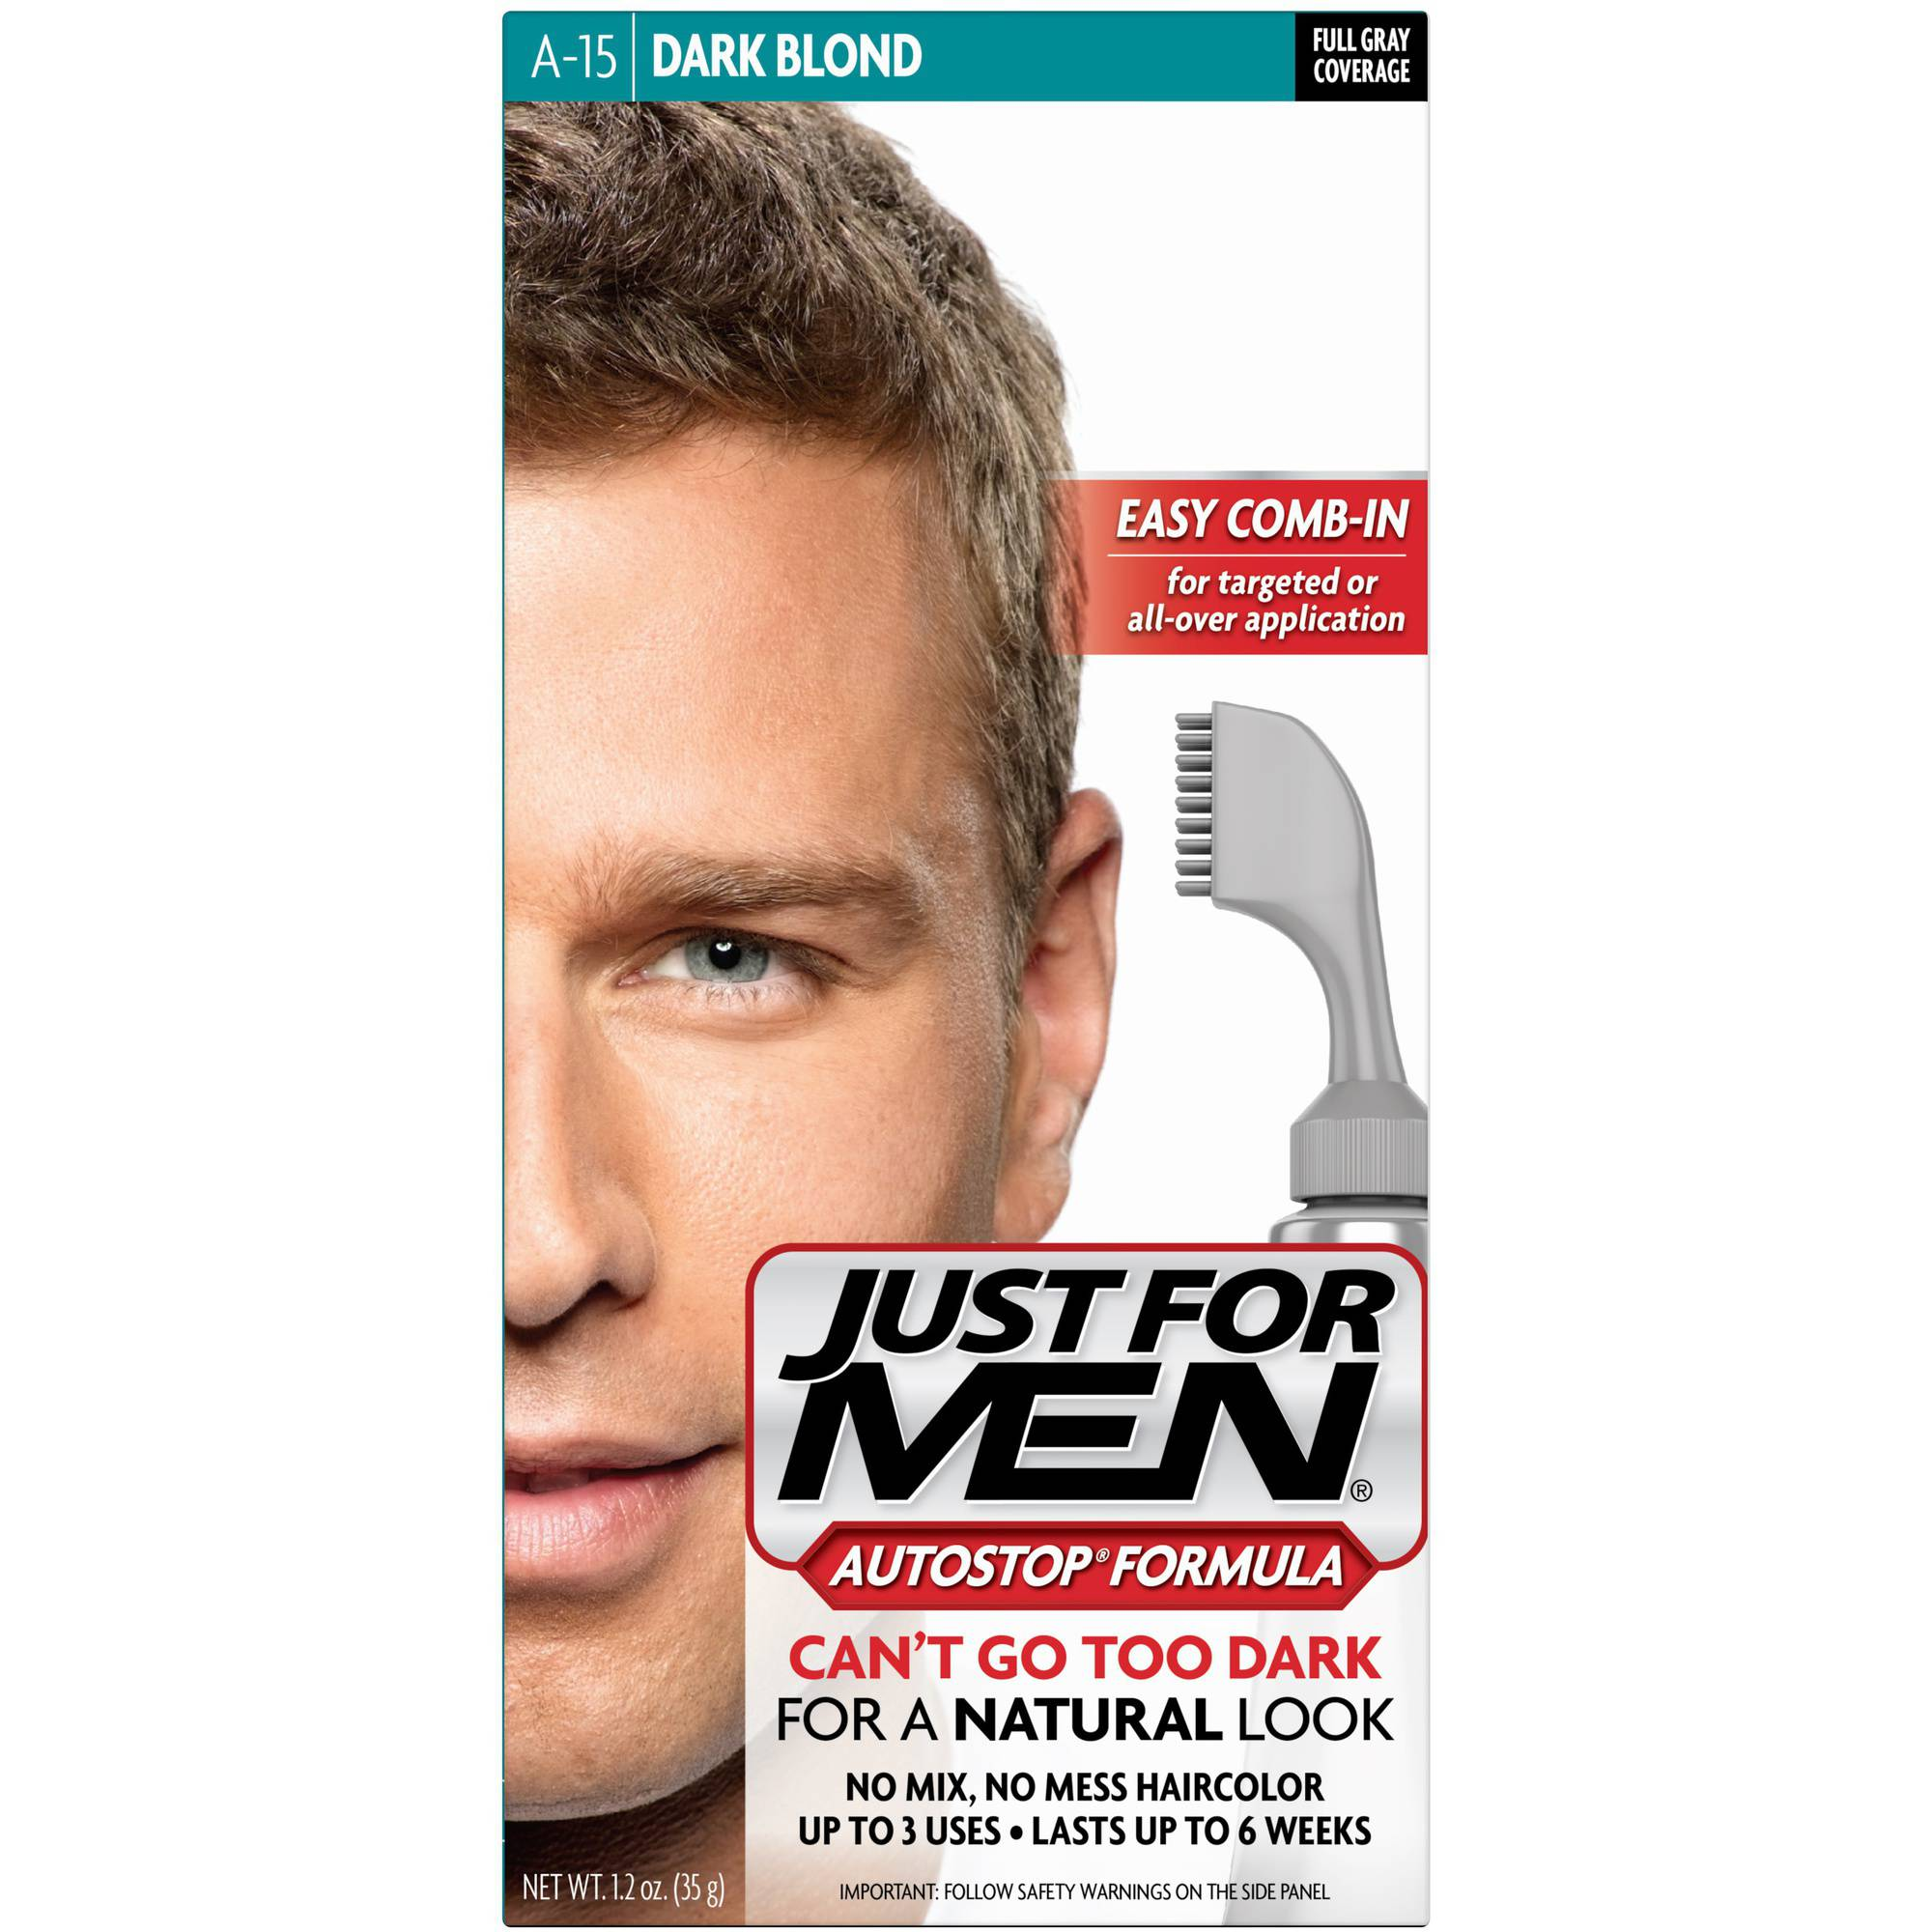 Just For Men AutoStop Formula, Men's Hair Color, Dark Blond (A-15)